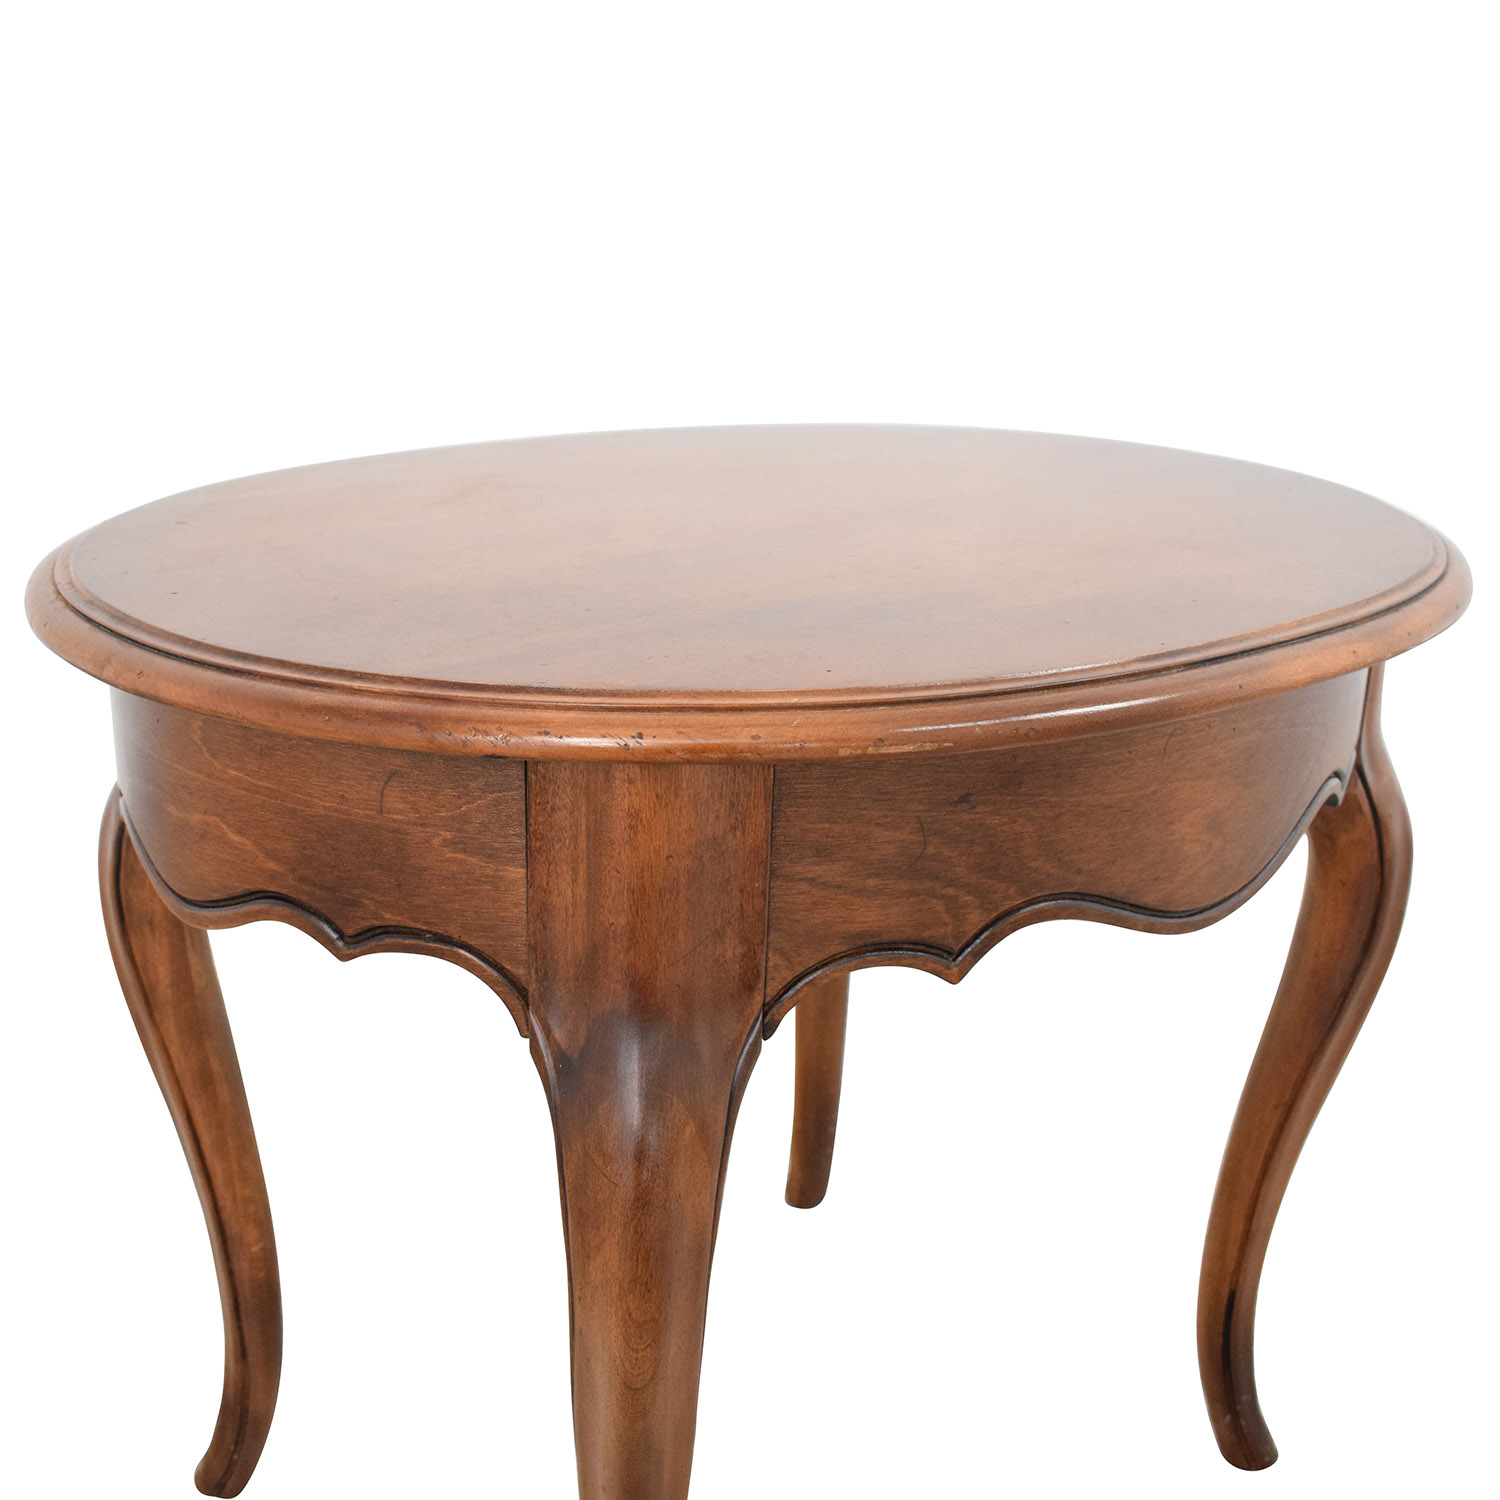 Ethan Allen Ethan Allen Oval End Table nj